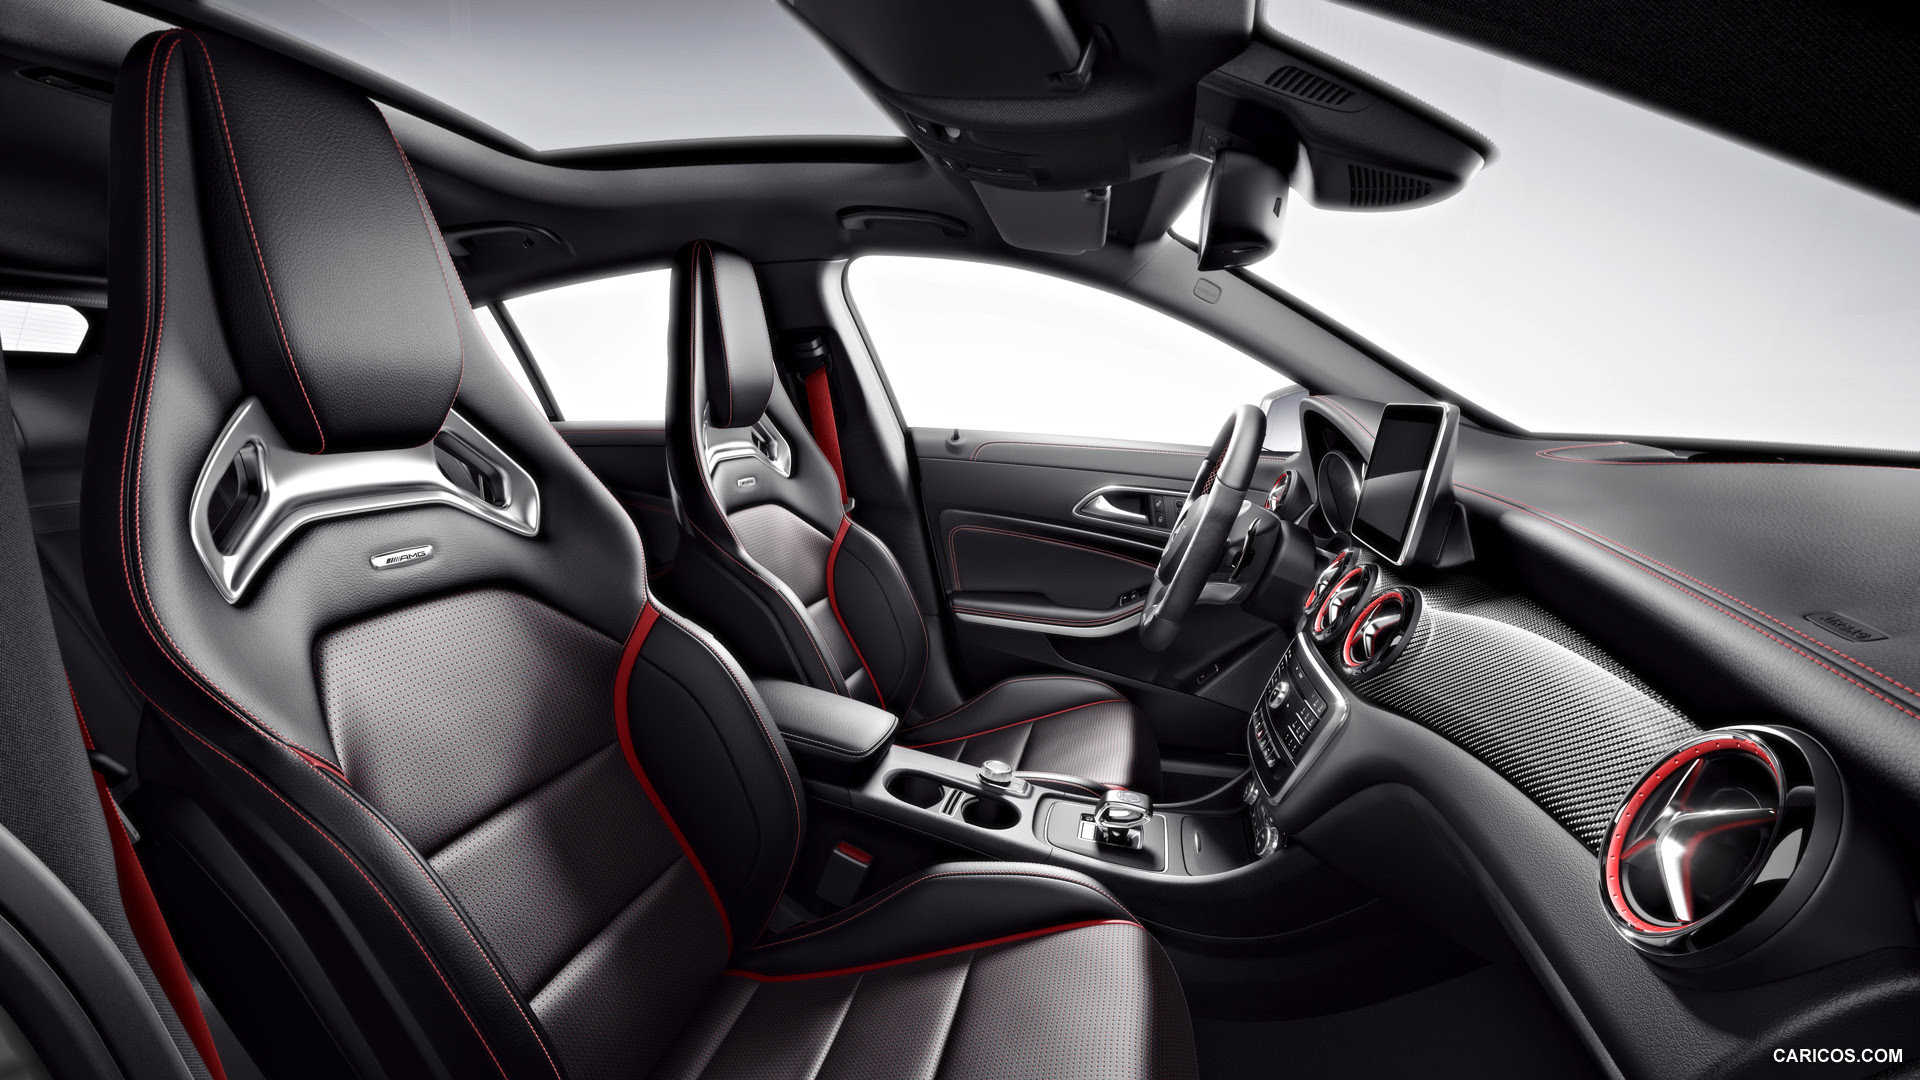 2015 Mercedes-Benz CLA 45 AMG Shooting Brake - Interior | HD Wallpaper #50 | 1920x1080